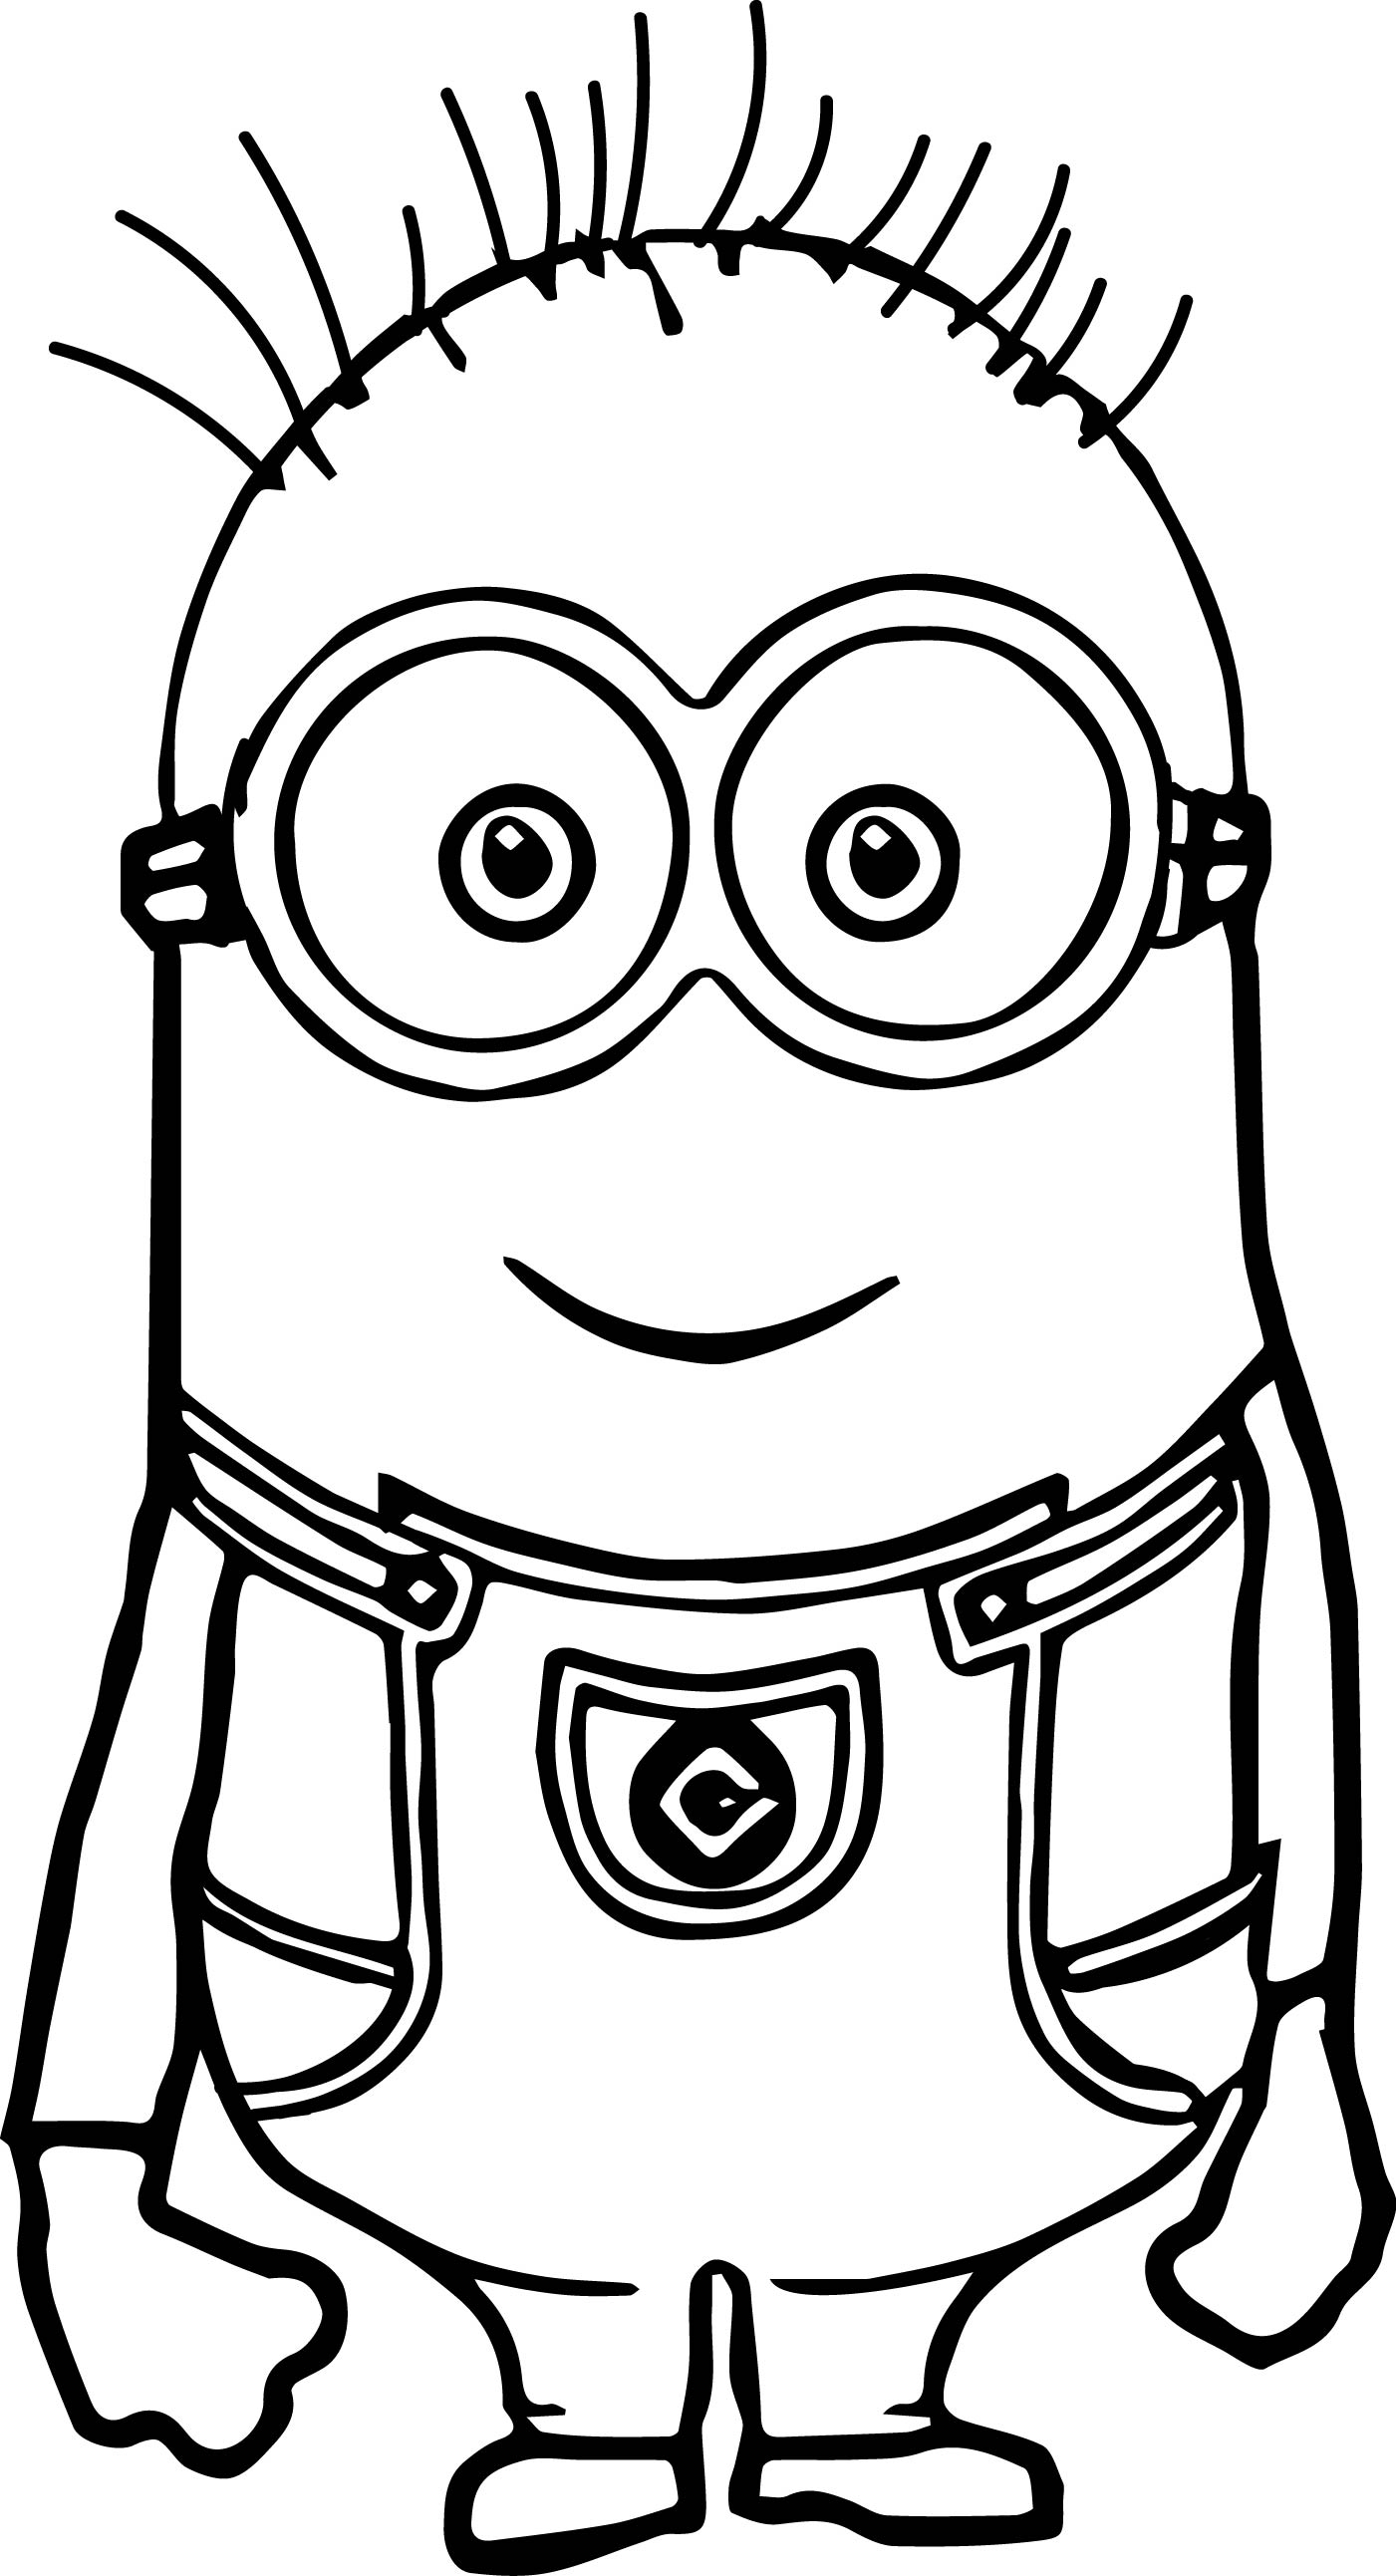 cute basic minion coloring page - Minion Coloring Pages